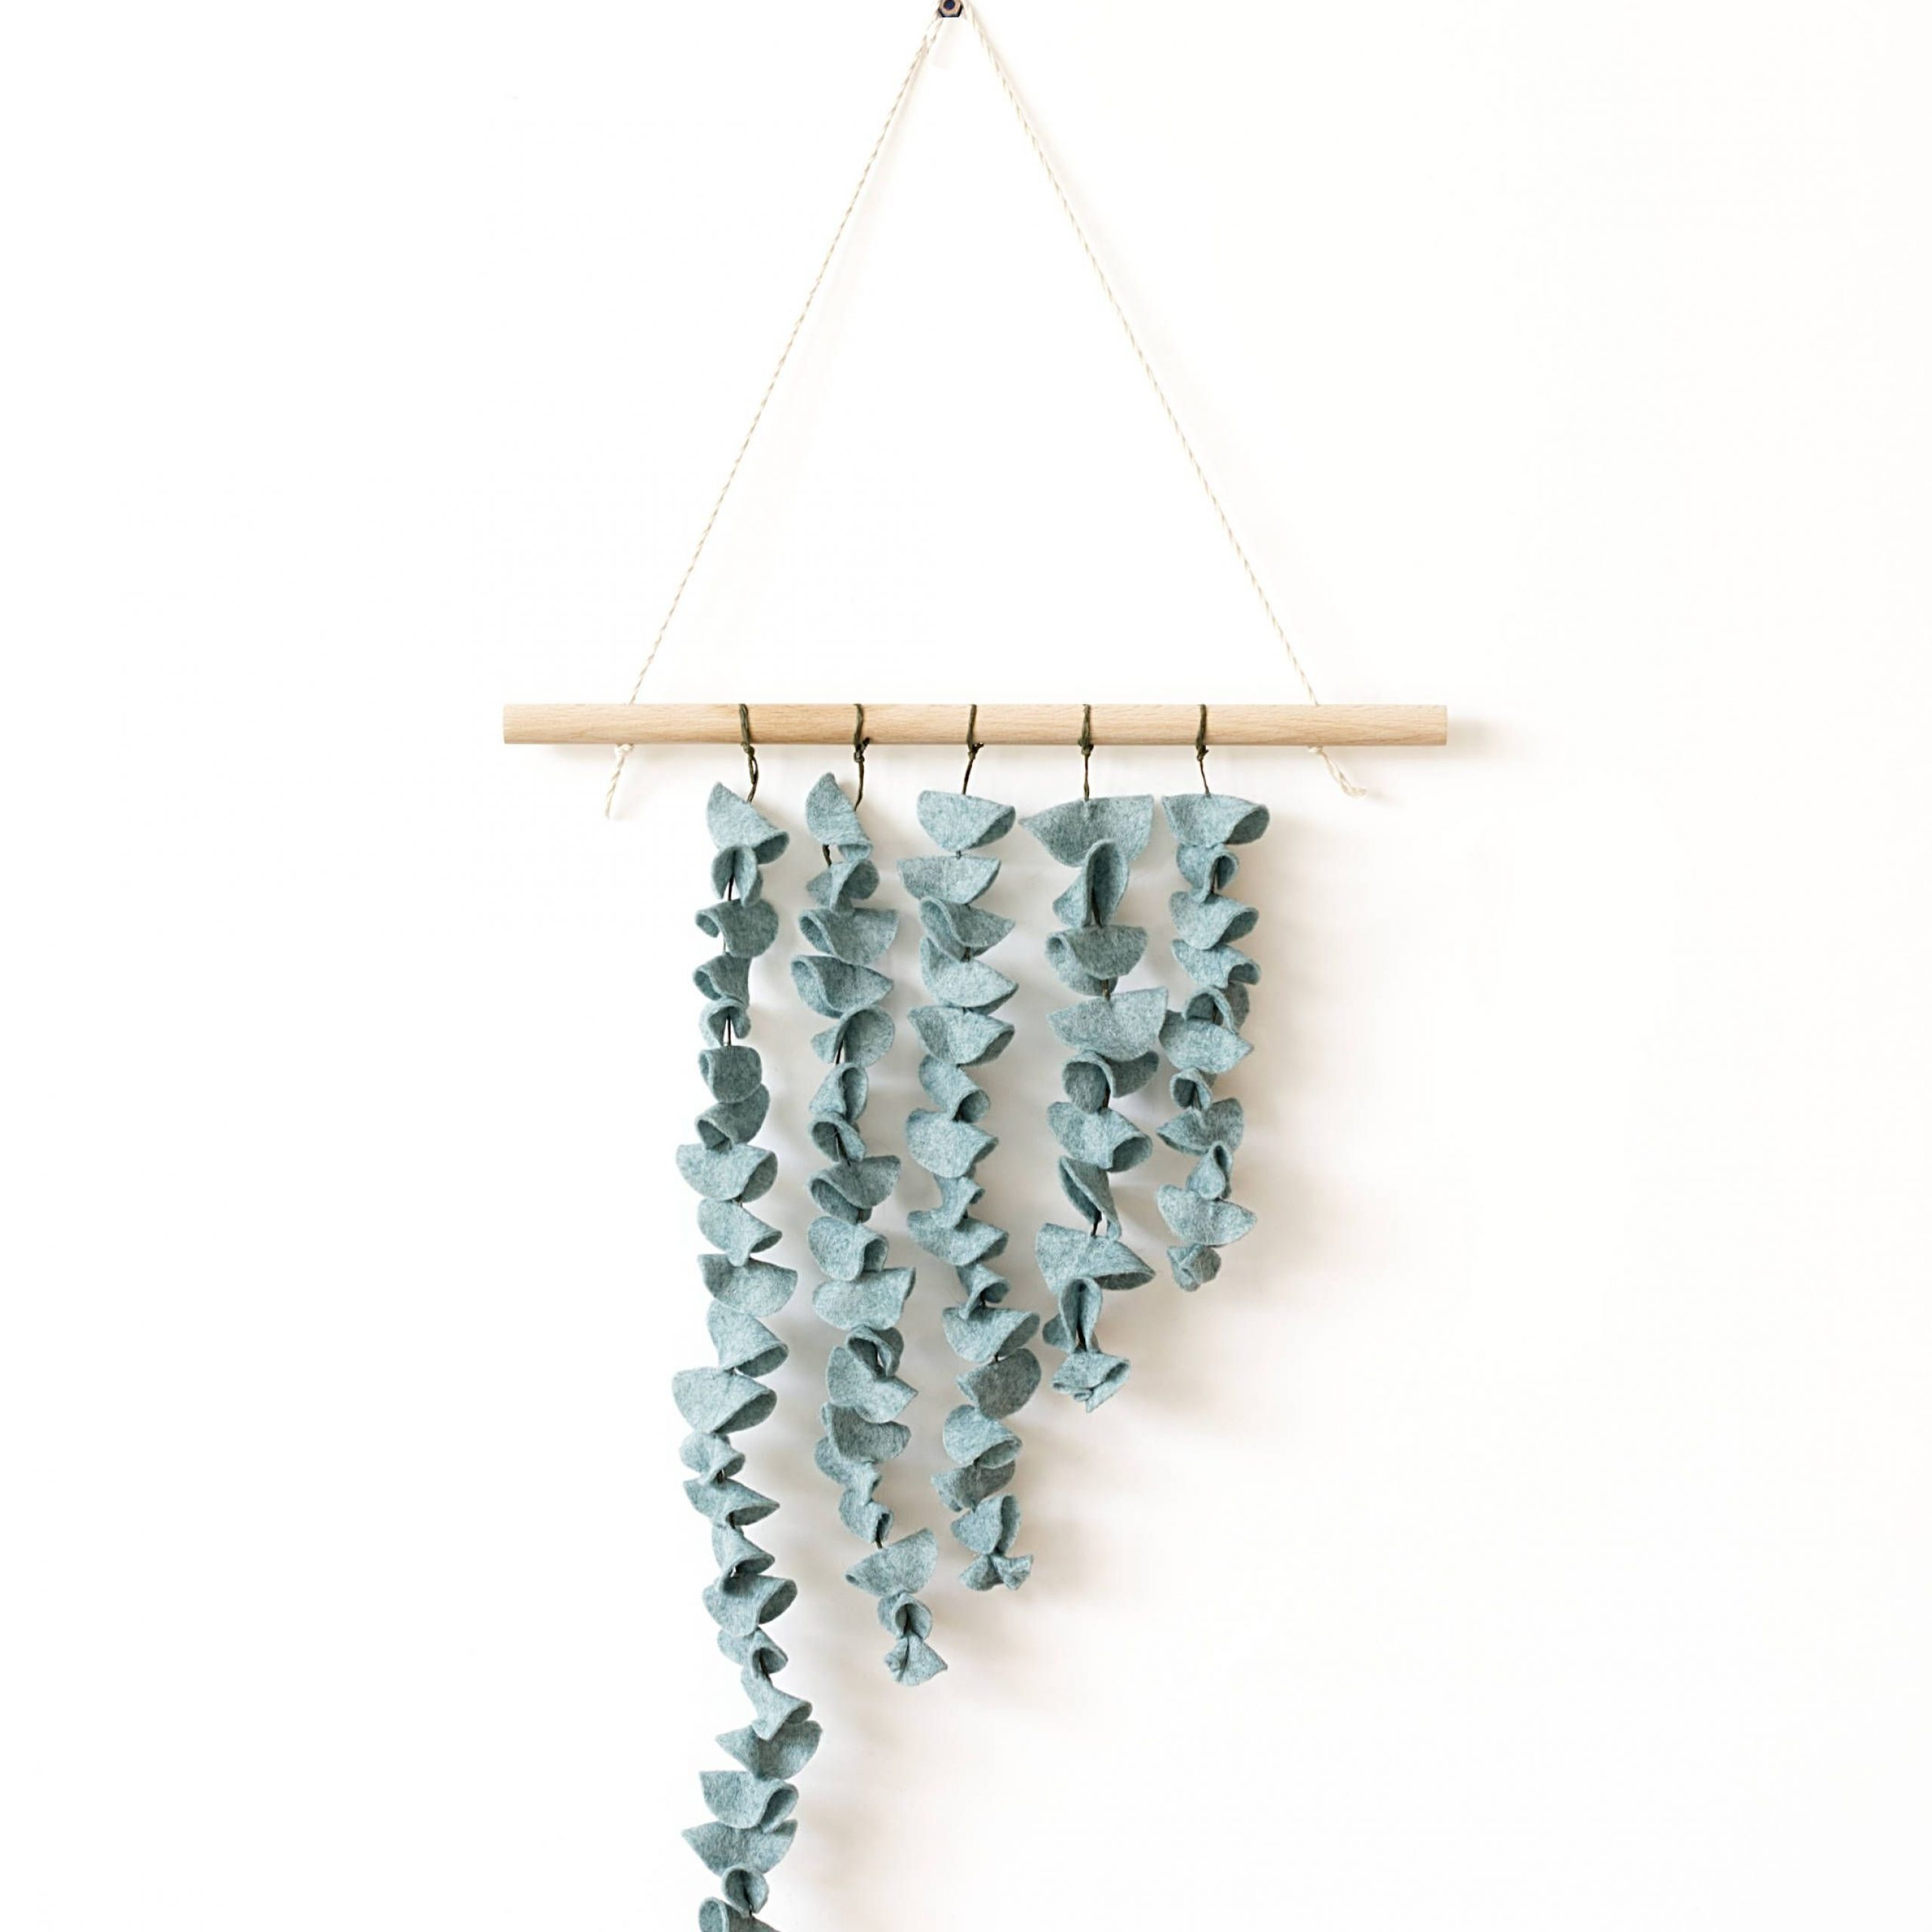 Felt Eucalyptus Wall Hanging, Above Bed Decor, Felt Leaves Throughout Most Current Blended Fabric Leaves Wall Hangings (View 16 of 20)